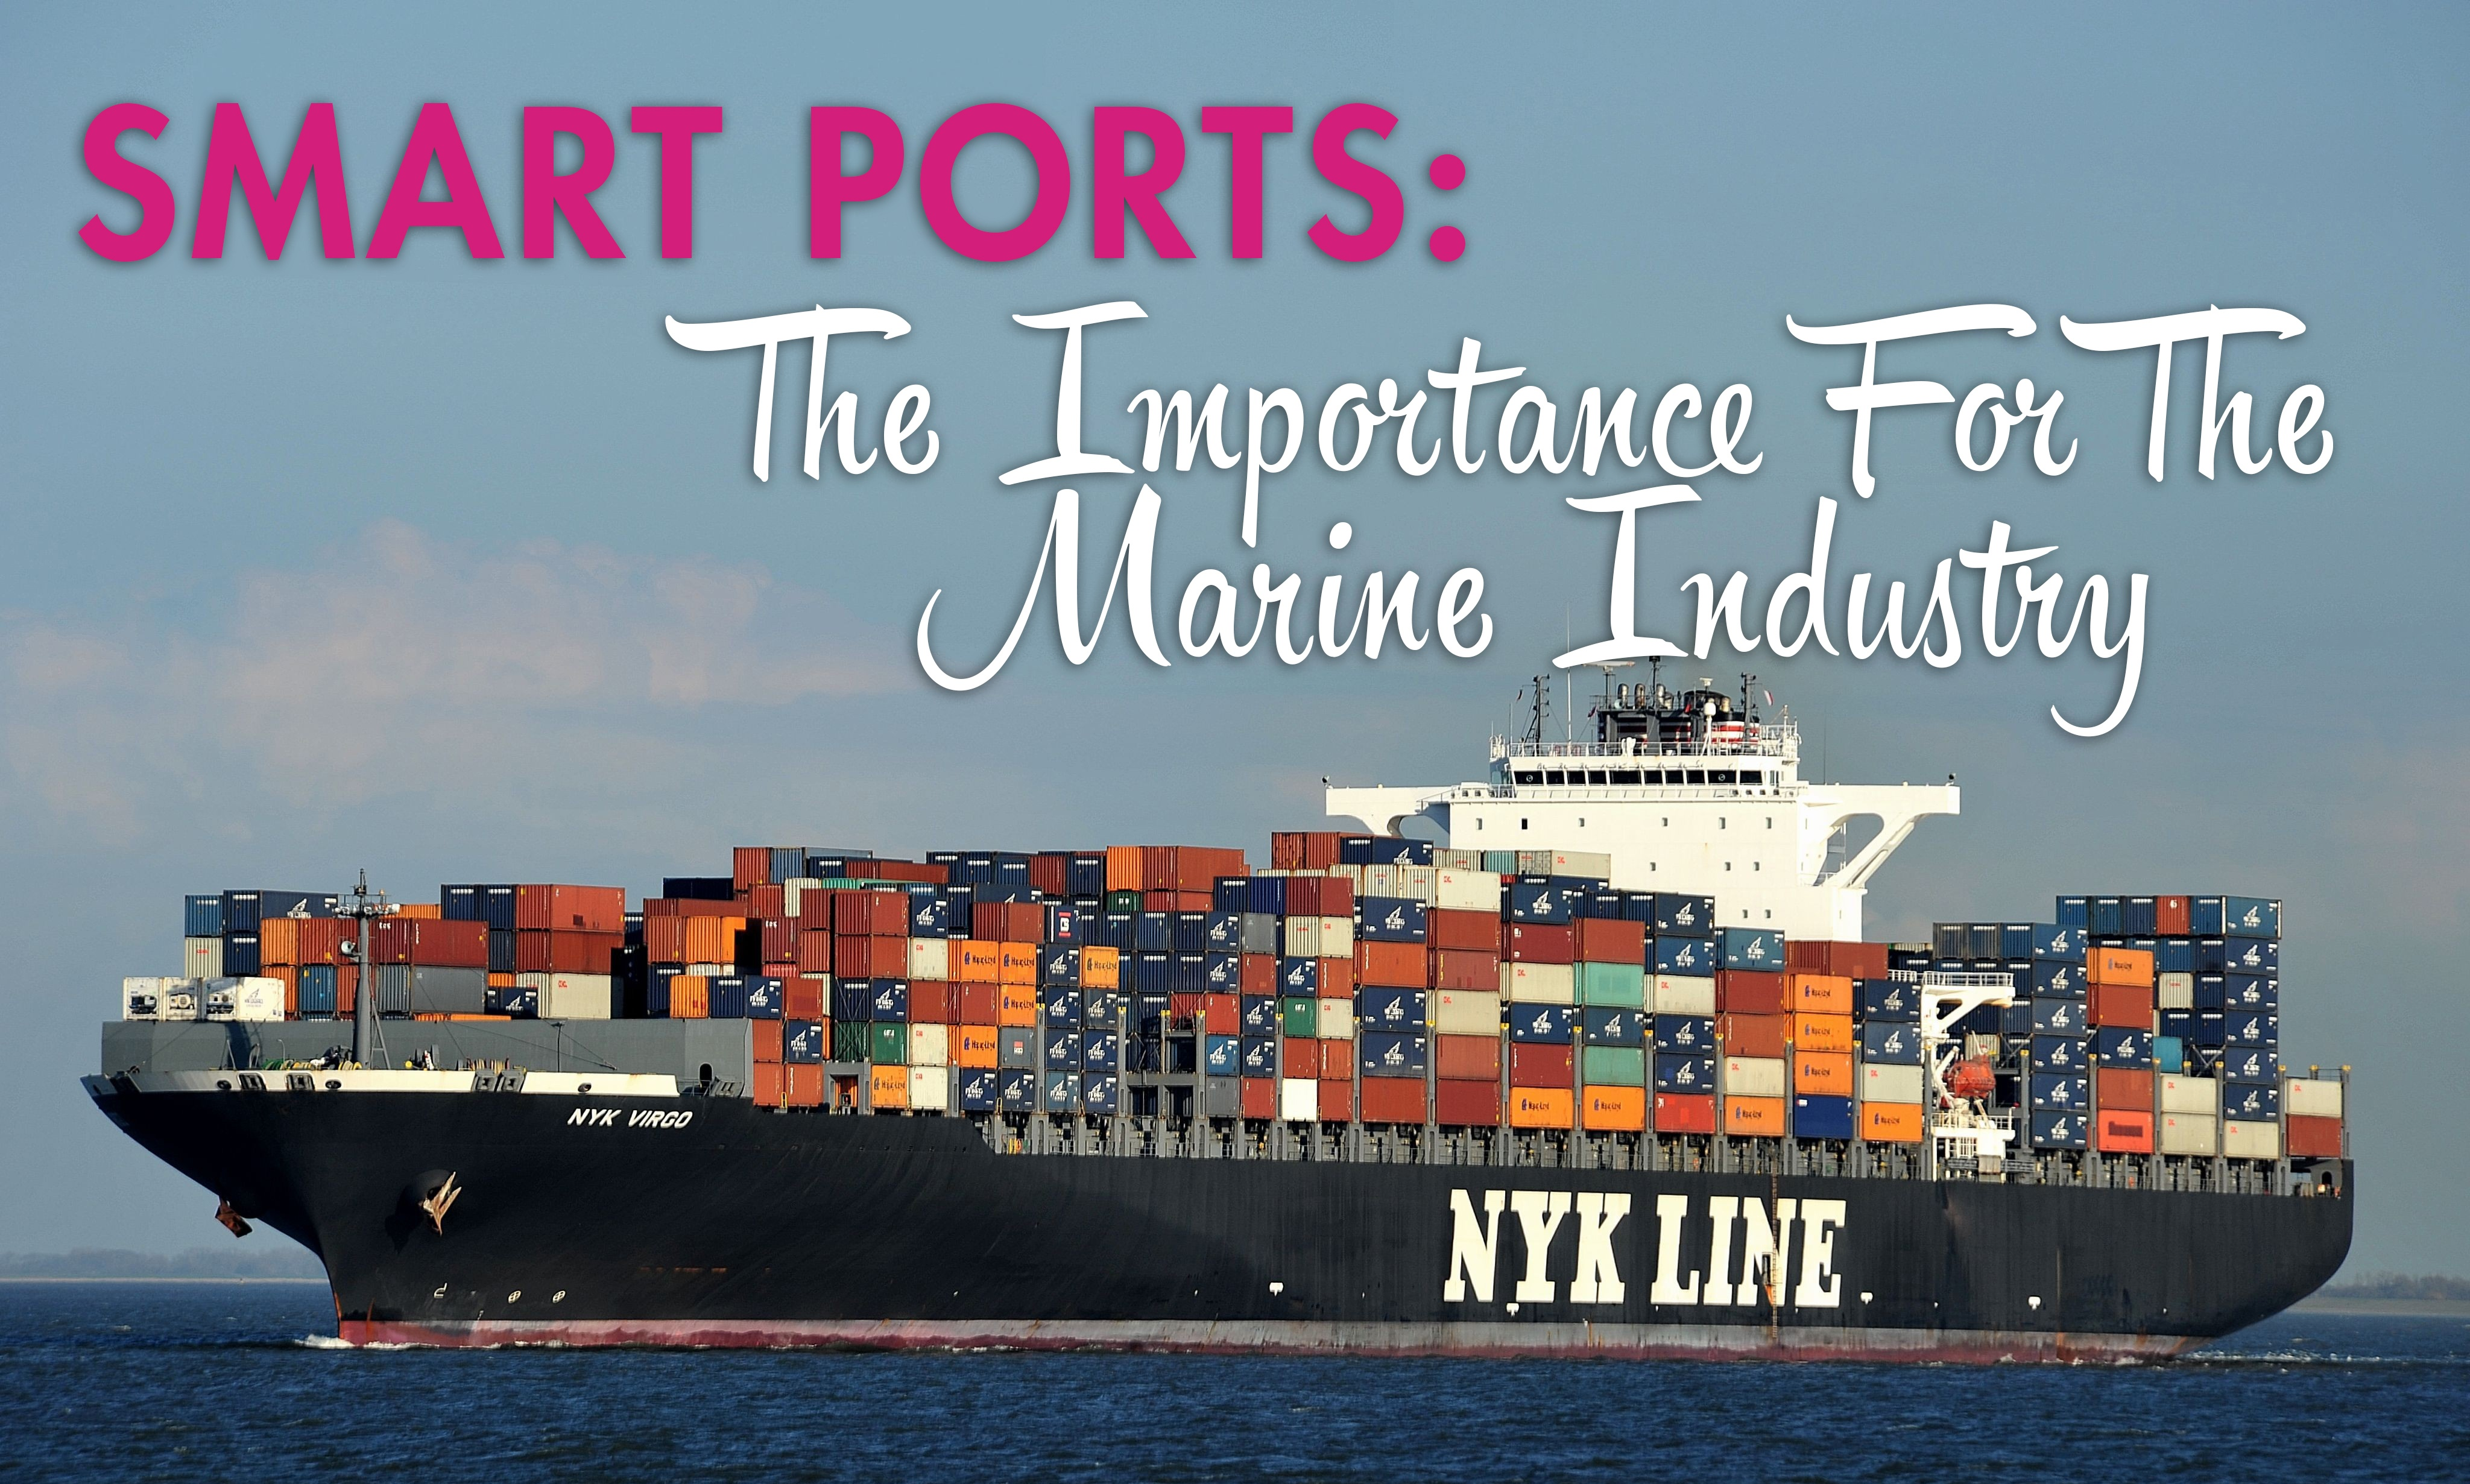 Smart ports importance to marine industry